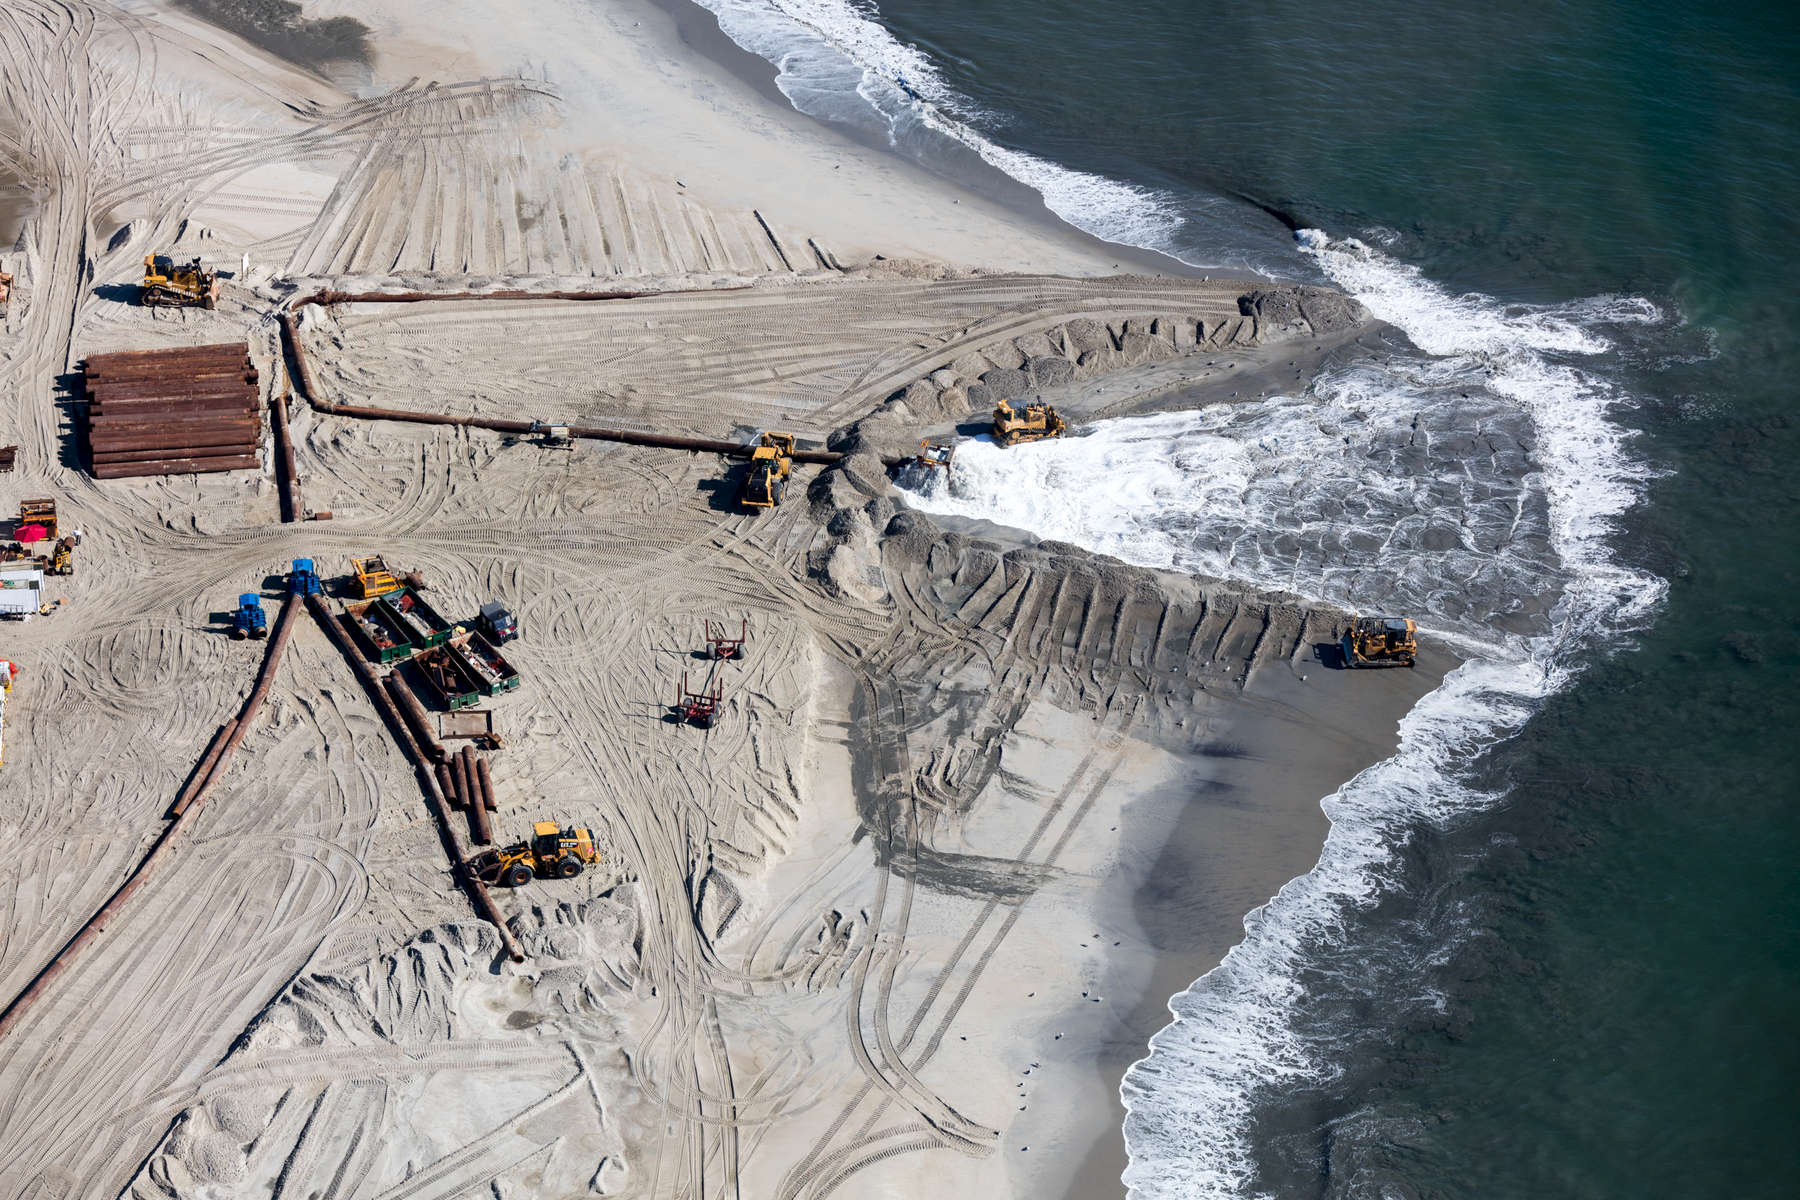 Beach Sand Nourishment Coming From Offshore, Howell, New Jersey 2018 (180904-0124)